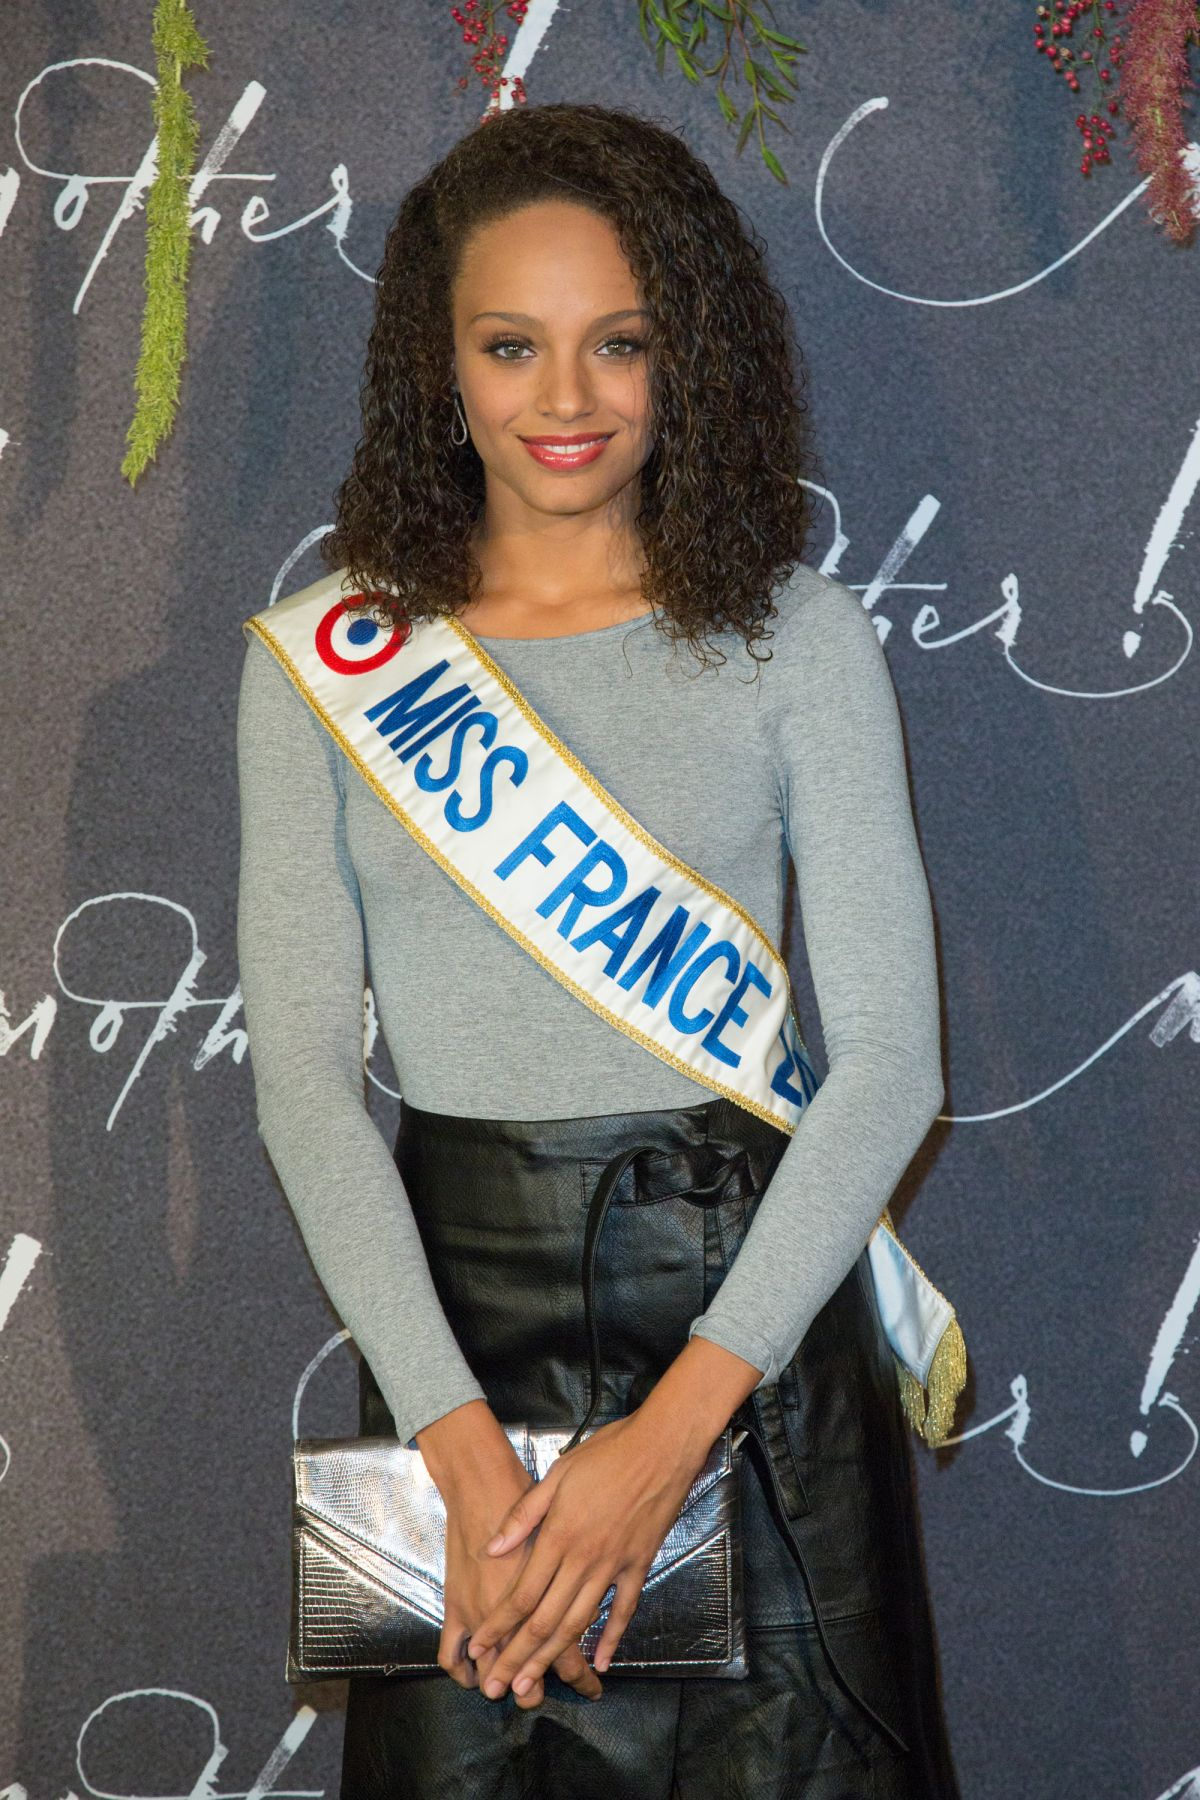 Alicia Aylies At Mother! premiere in Paris